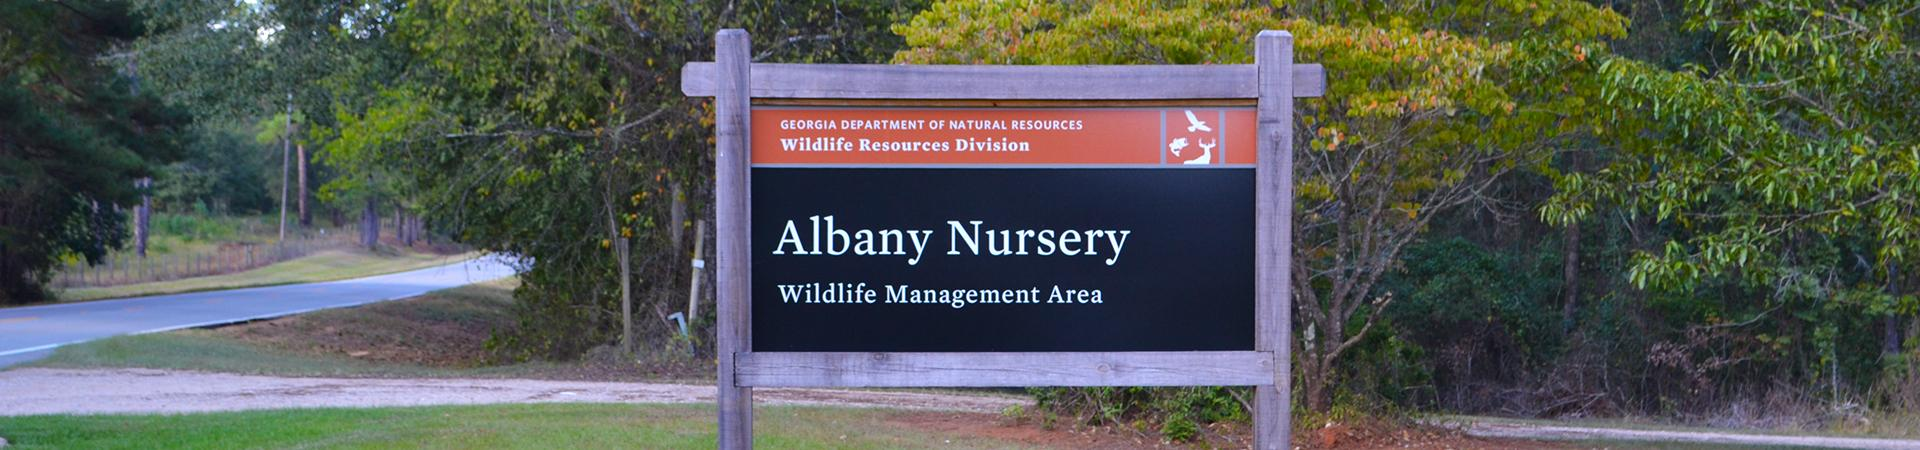 Albany nursery wma wildlife resources division for Georgia fishing license cost